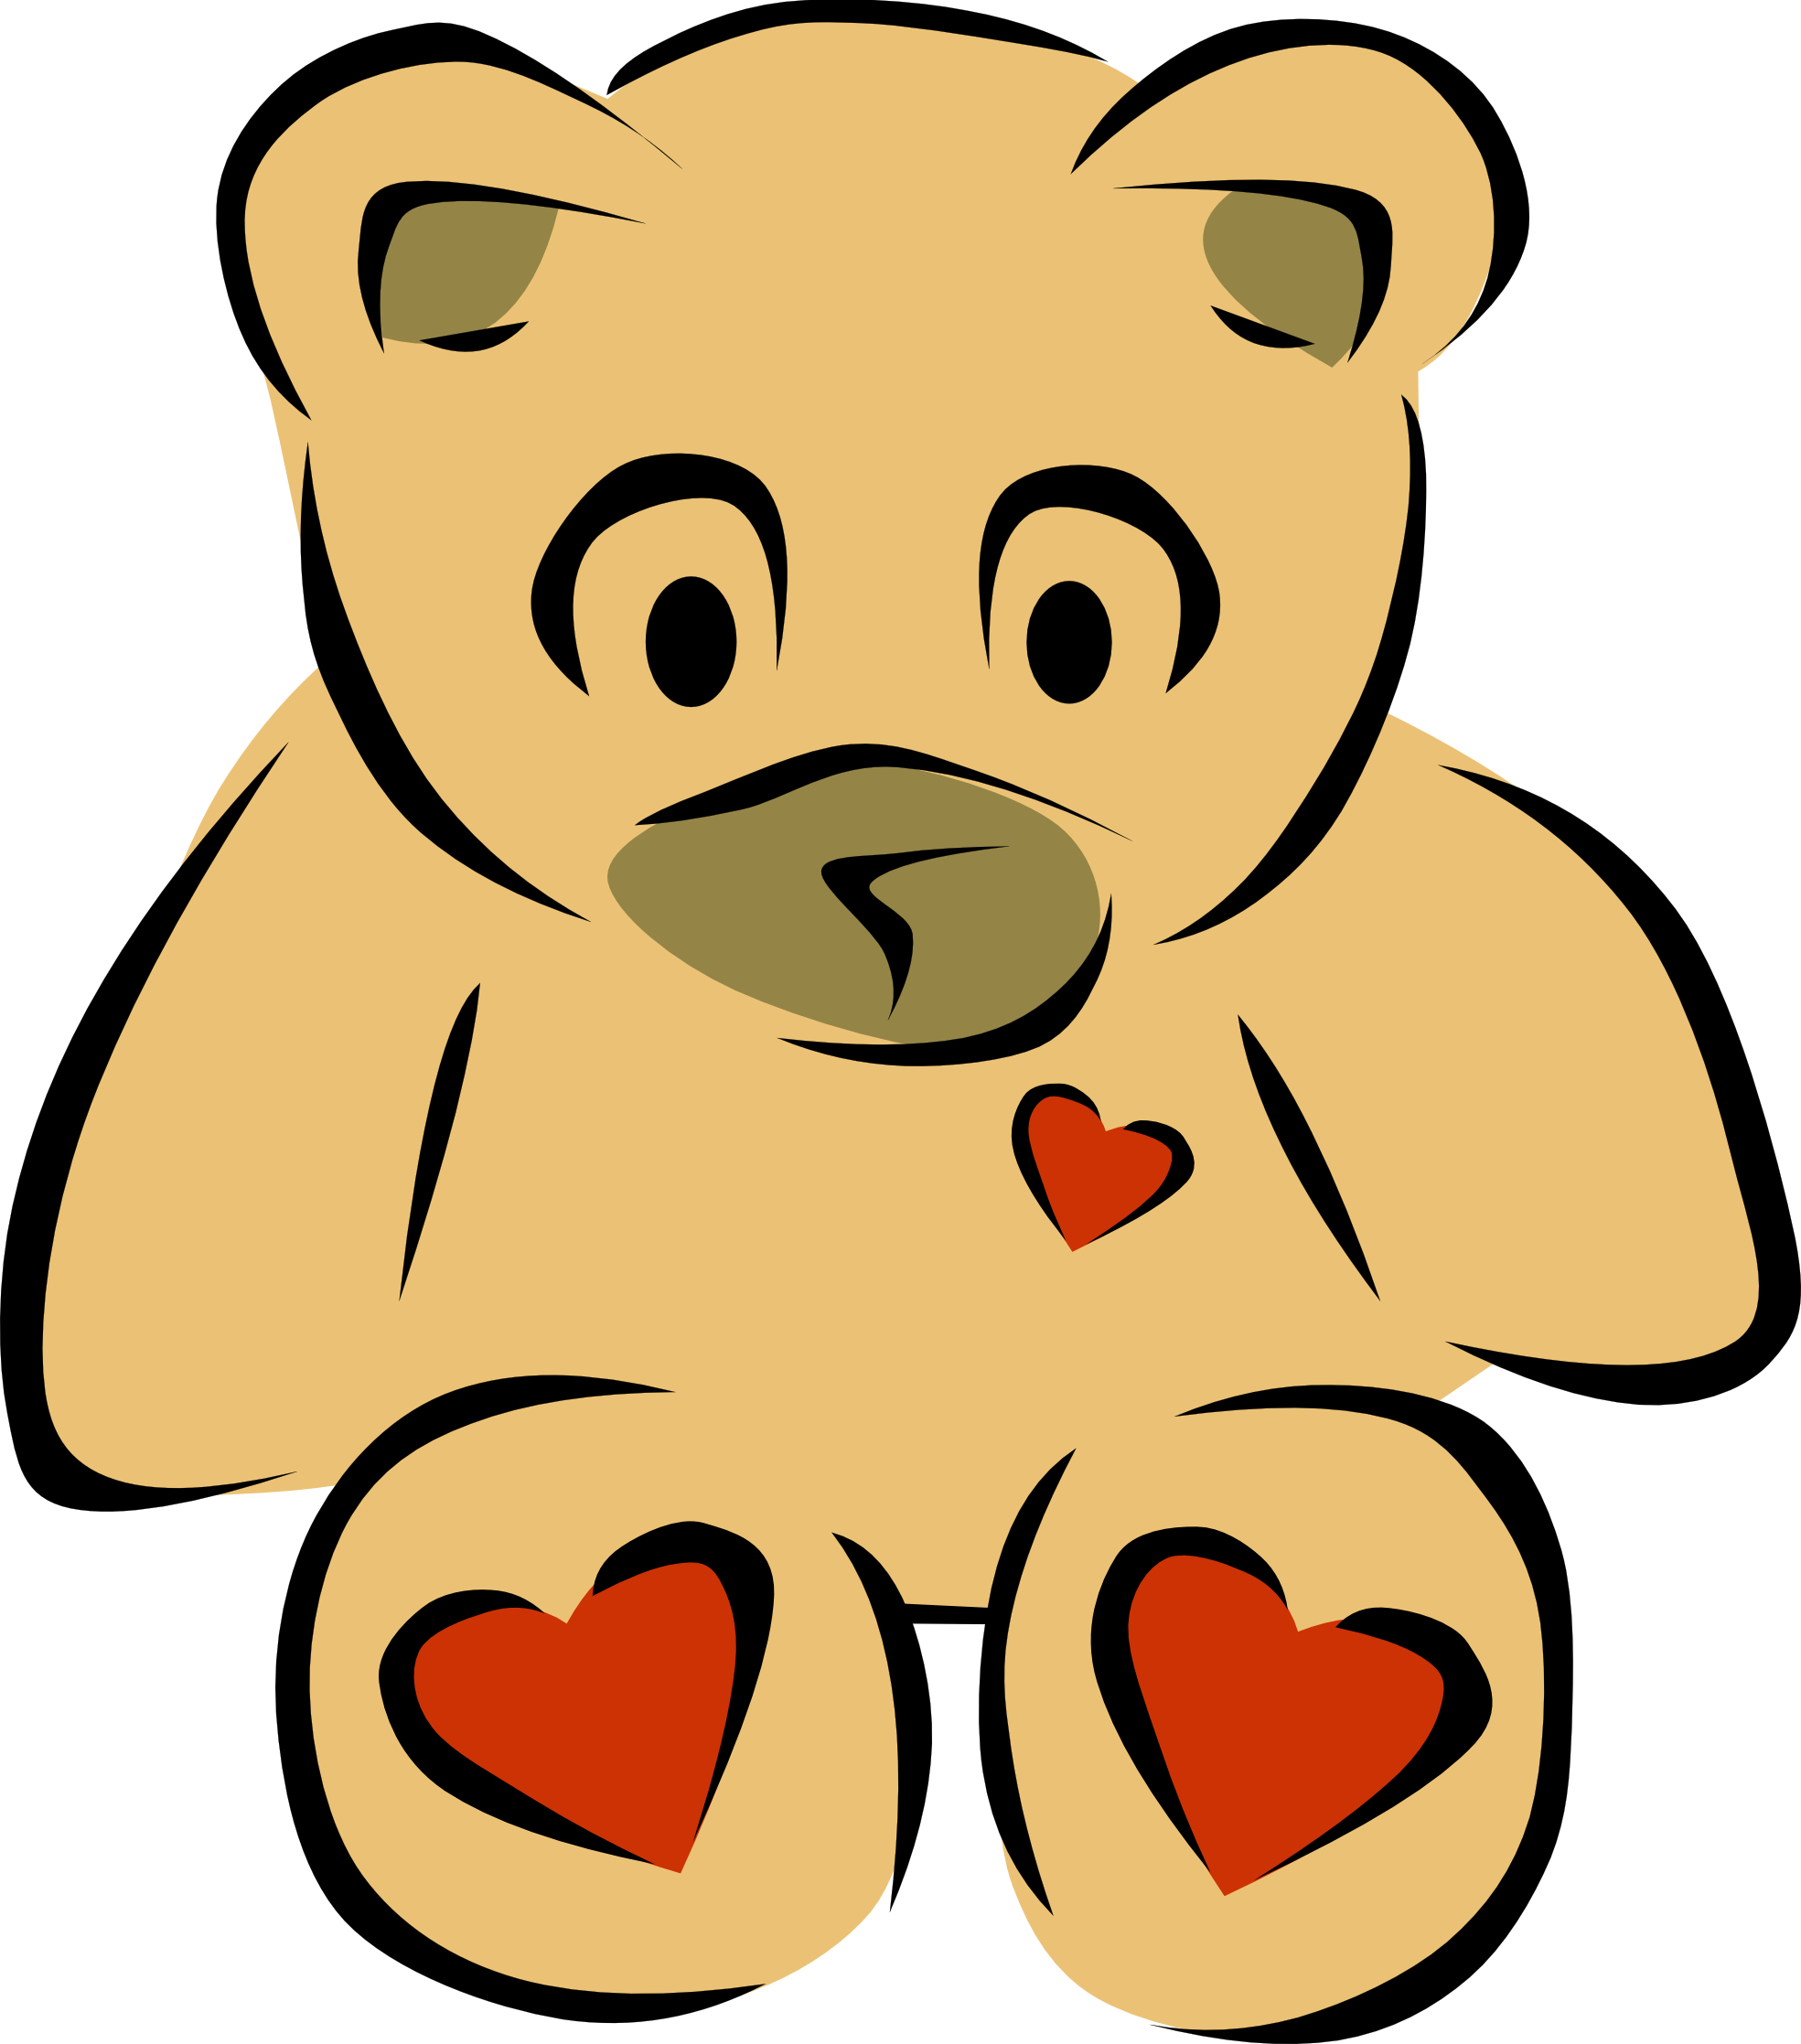 Plush toy clipart.